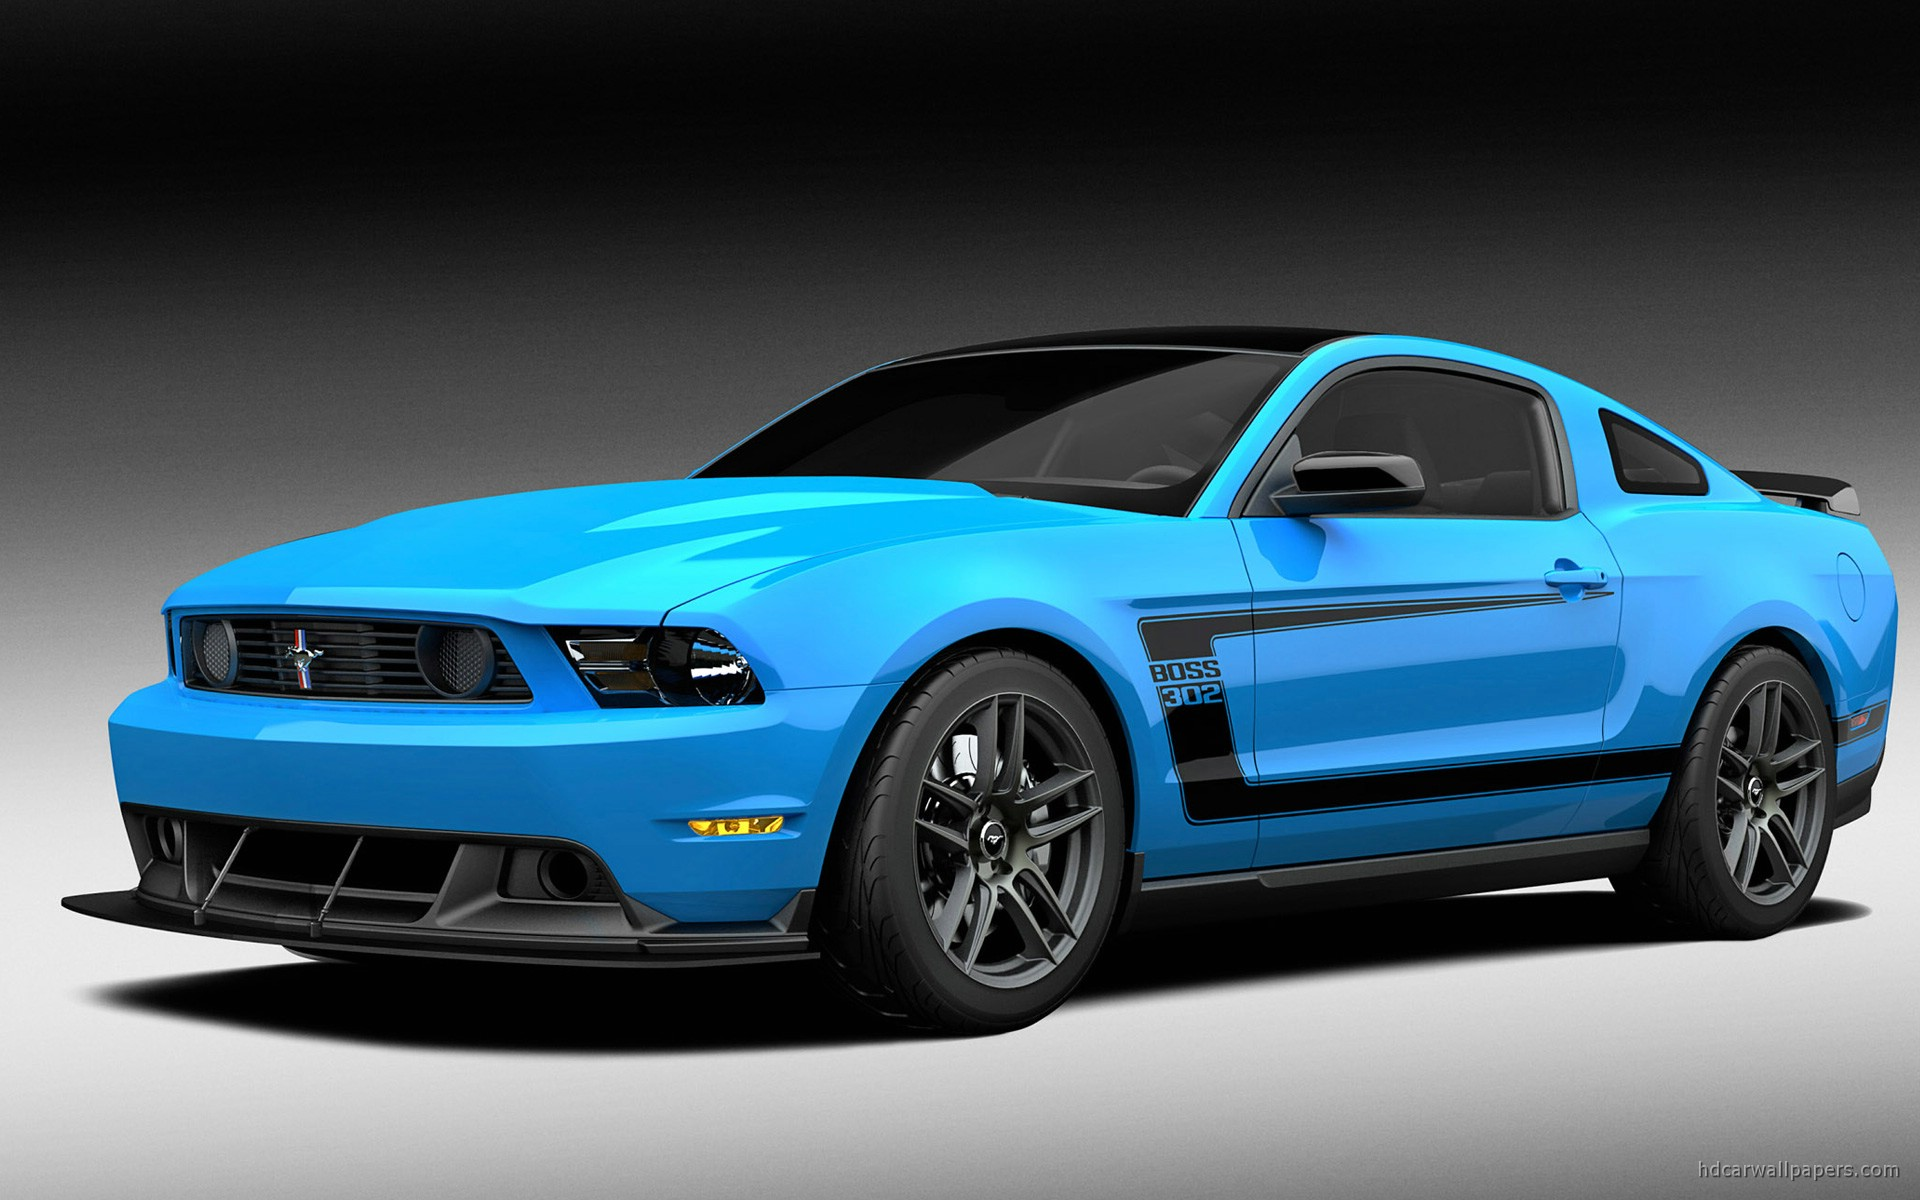 http://www.hdcarwallpapers.com/walls/blue_2012_ford_mustang_boss-wide.jpg